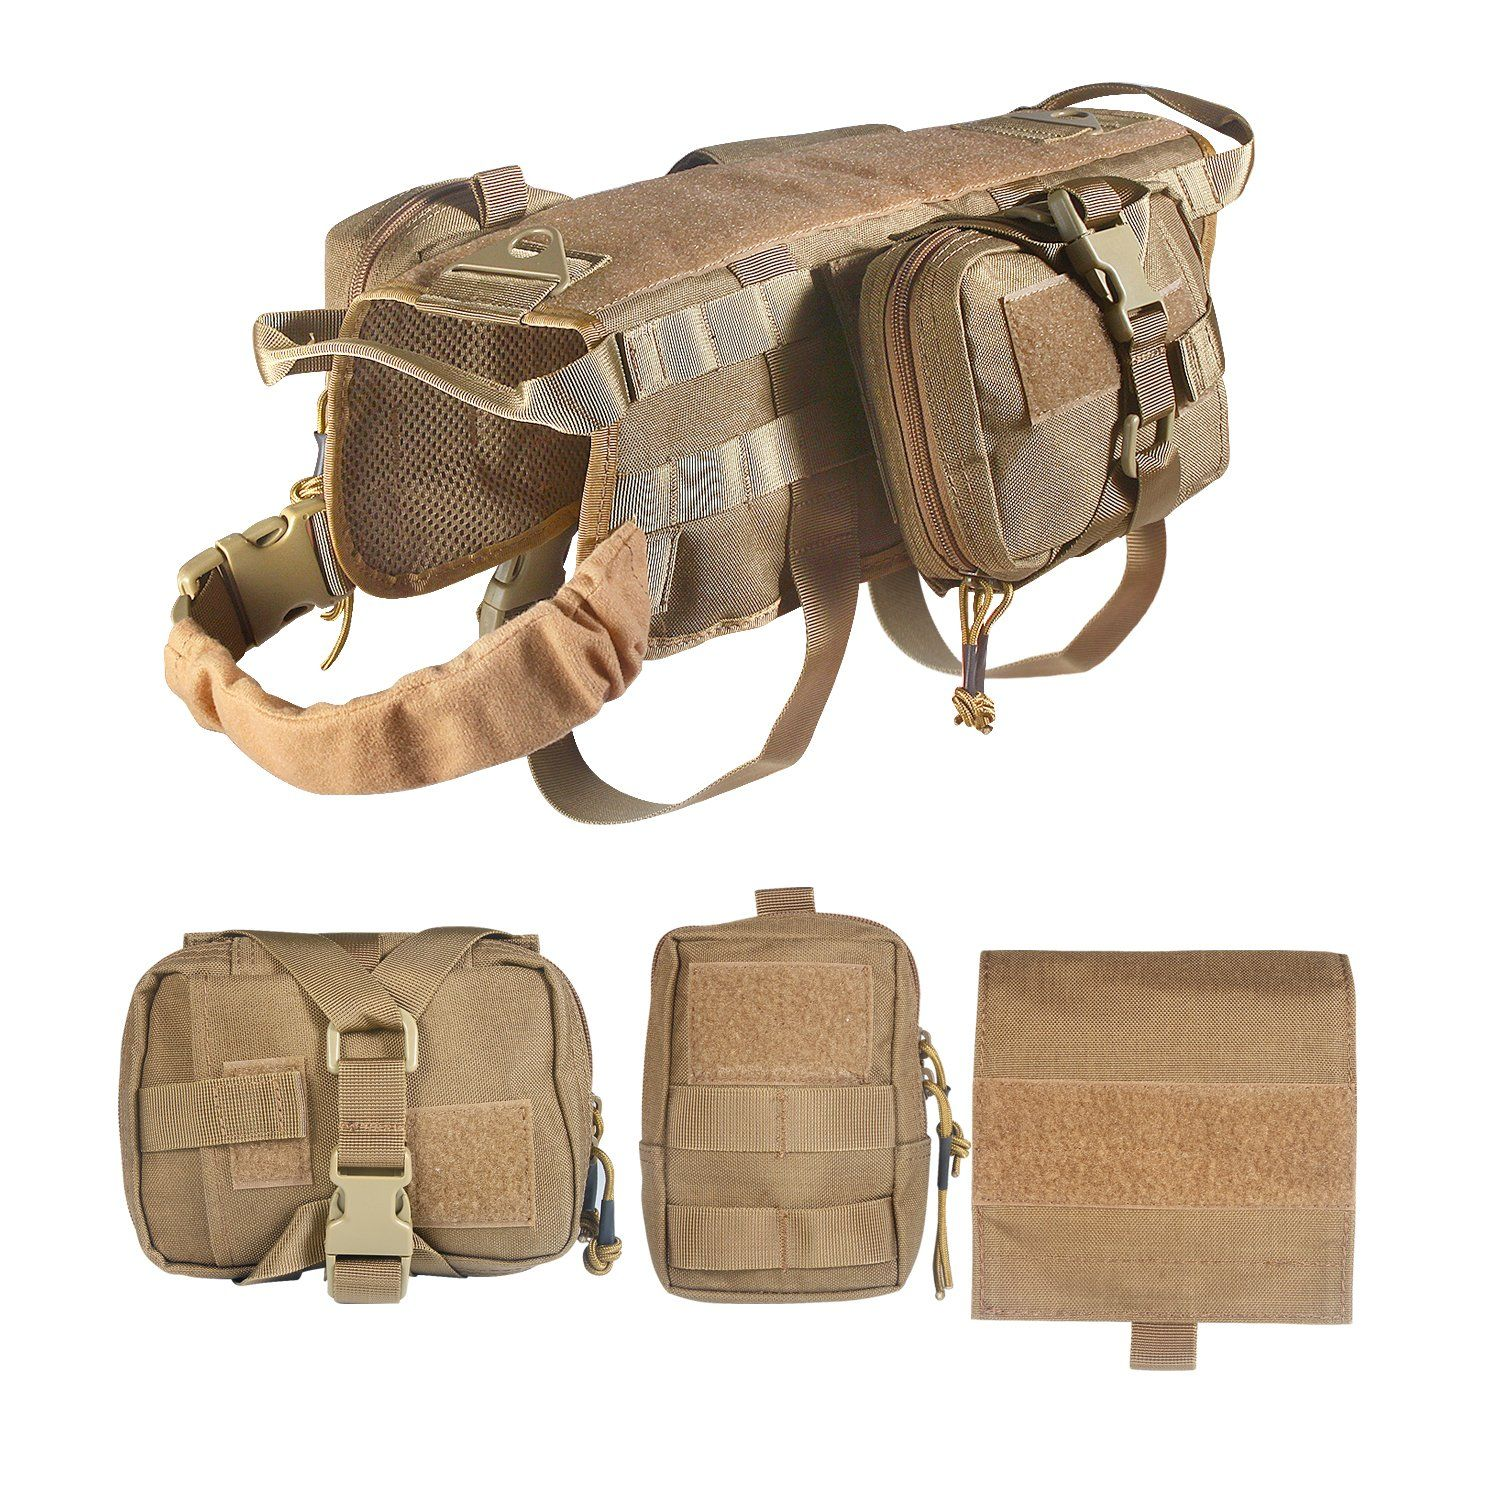 Feliscanis Tactical Dog Vest Training Molle Harness with 3 Detachable Pouches